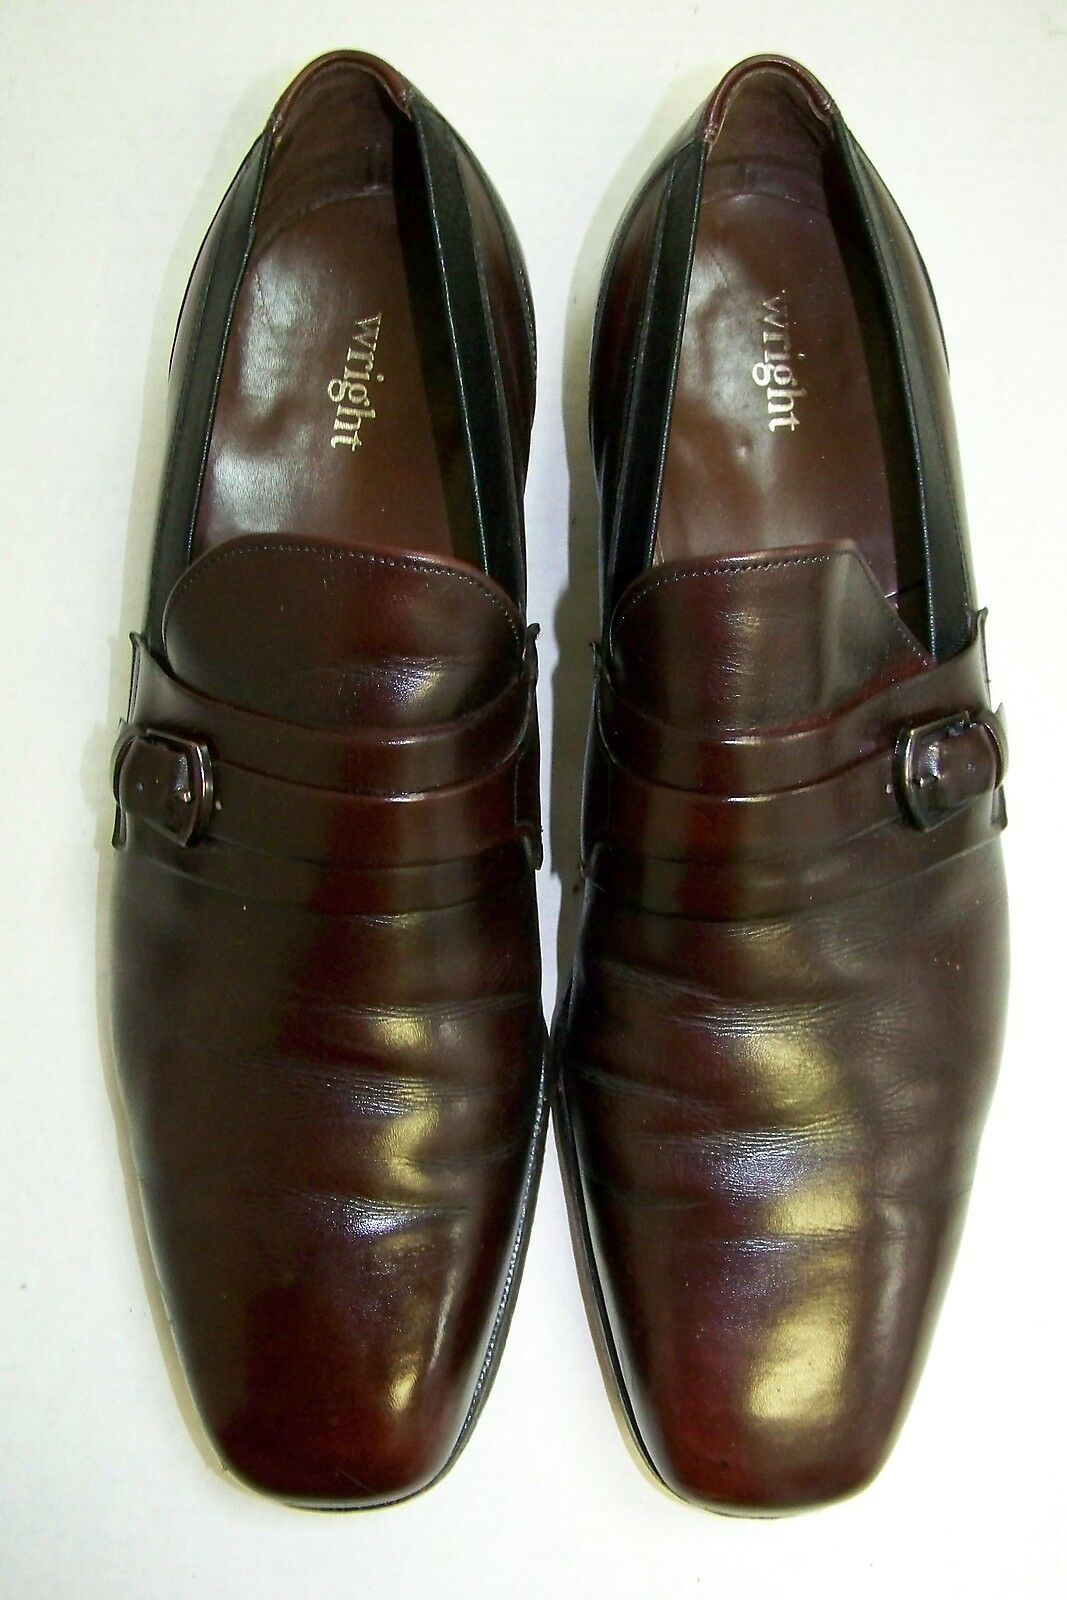 Wright Cordovan Loafers Leather Slip-on Dress Driving Loafers Cordovan 13 B eb105b